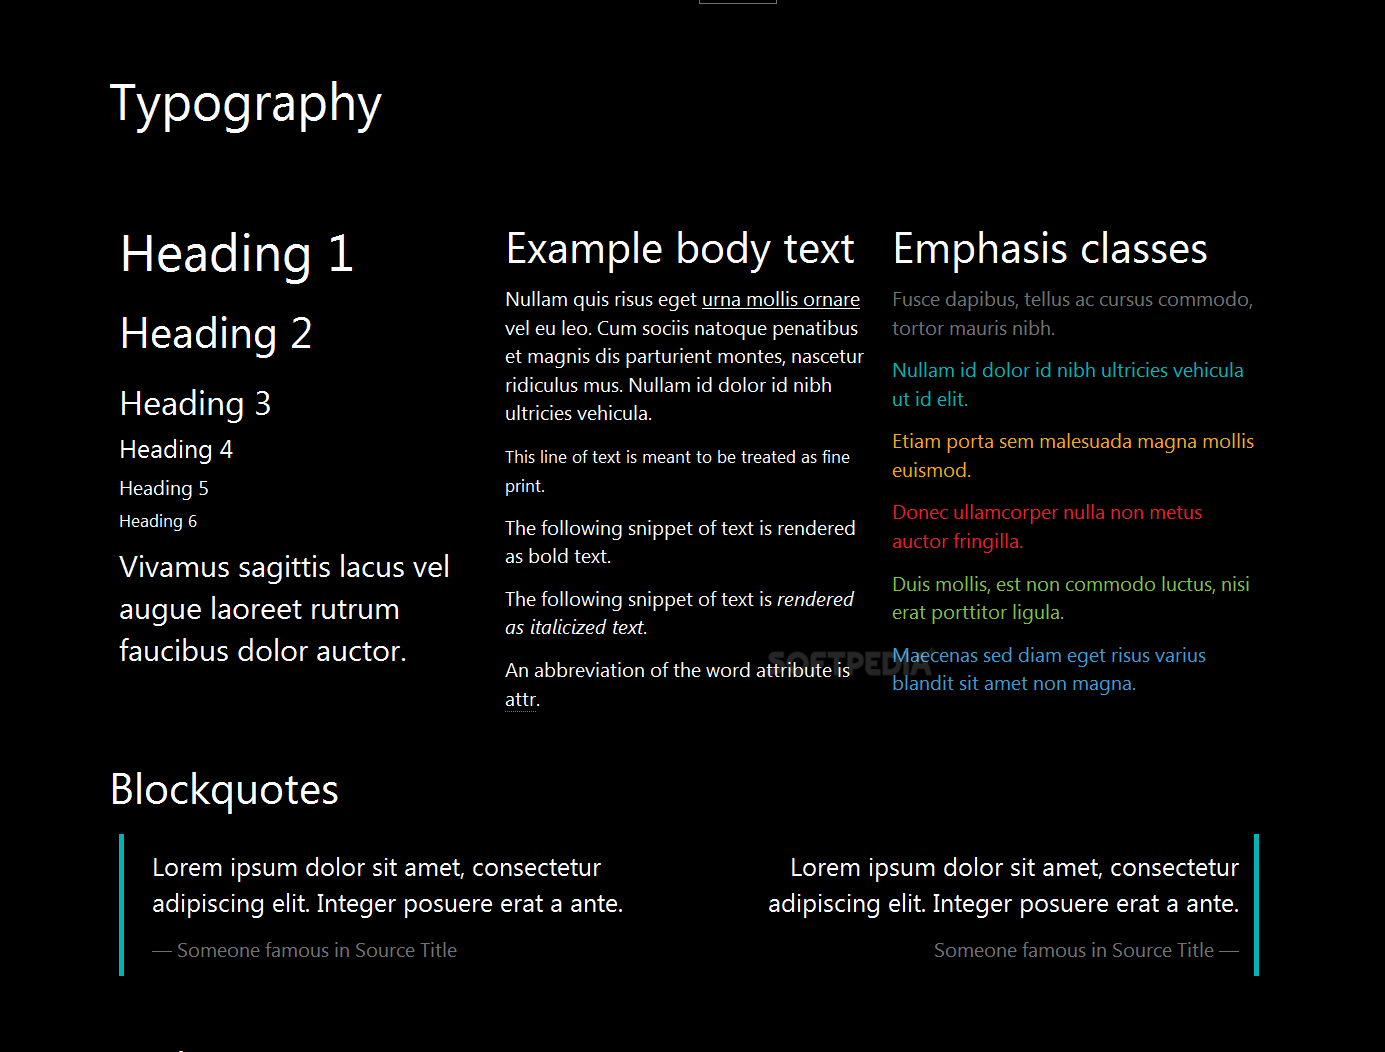 M8tro Bootstrap - Support is included for basic buttons, navbars, typography elements and table styles